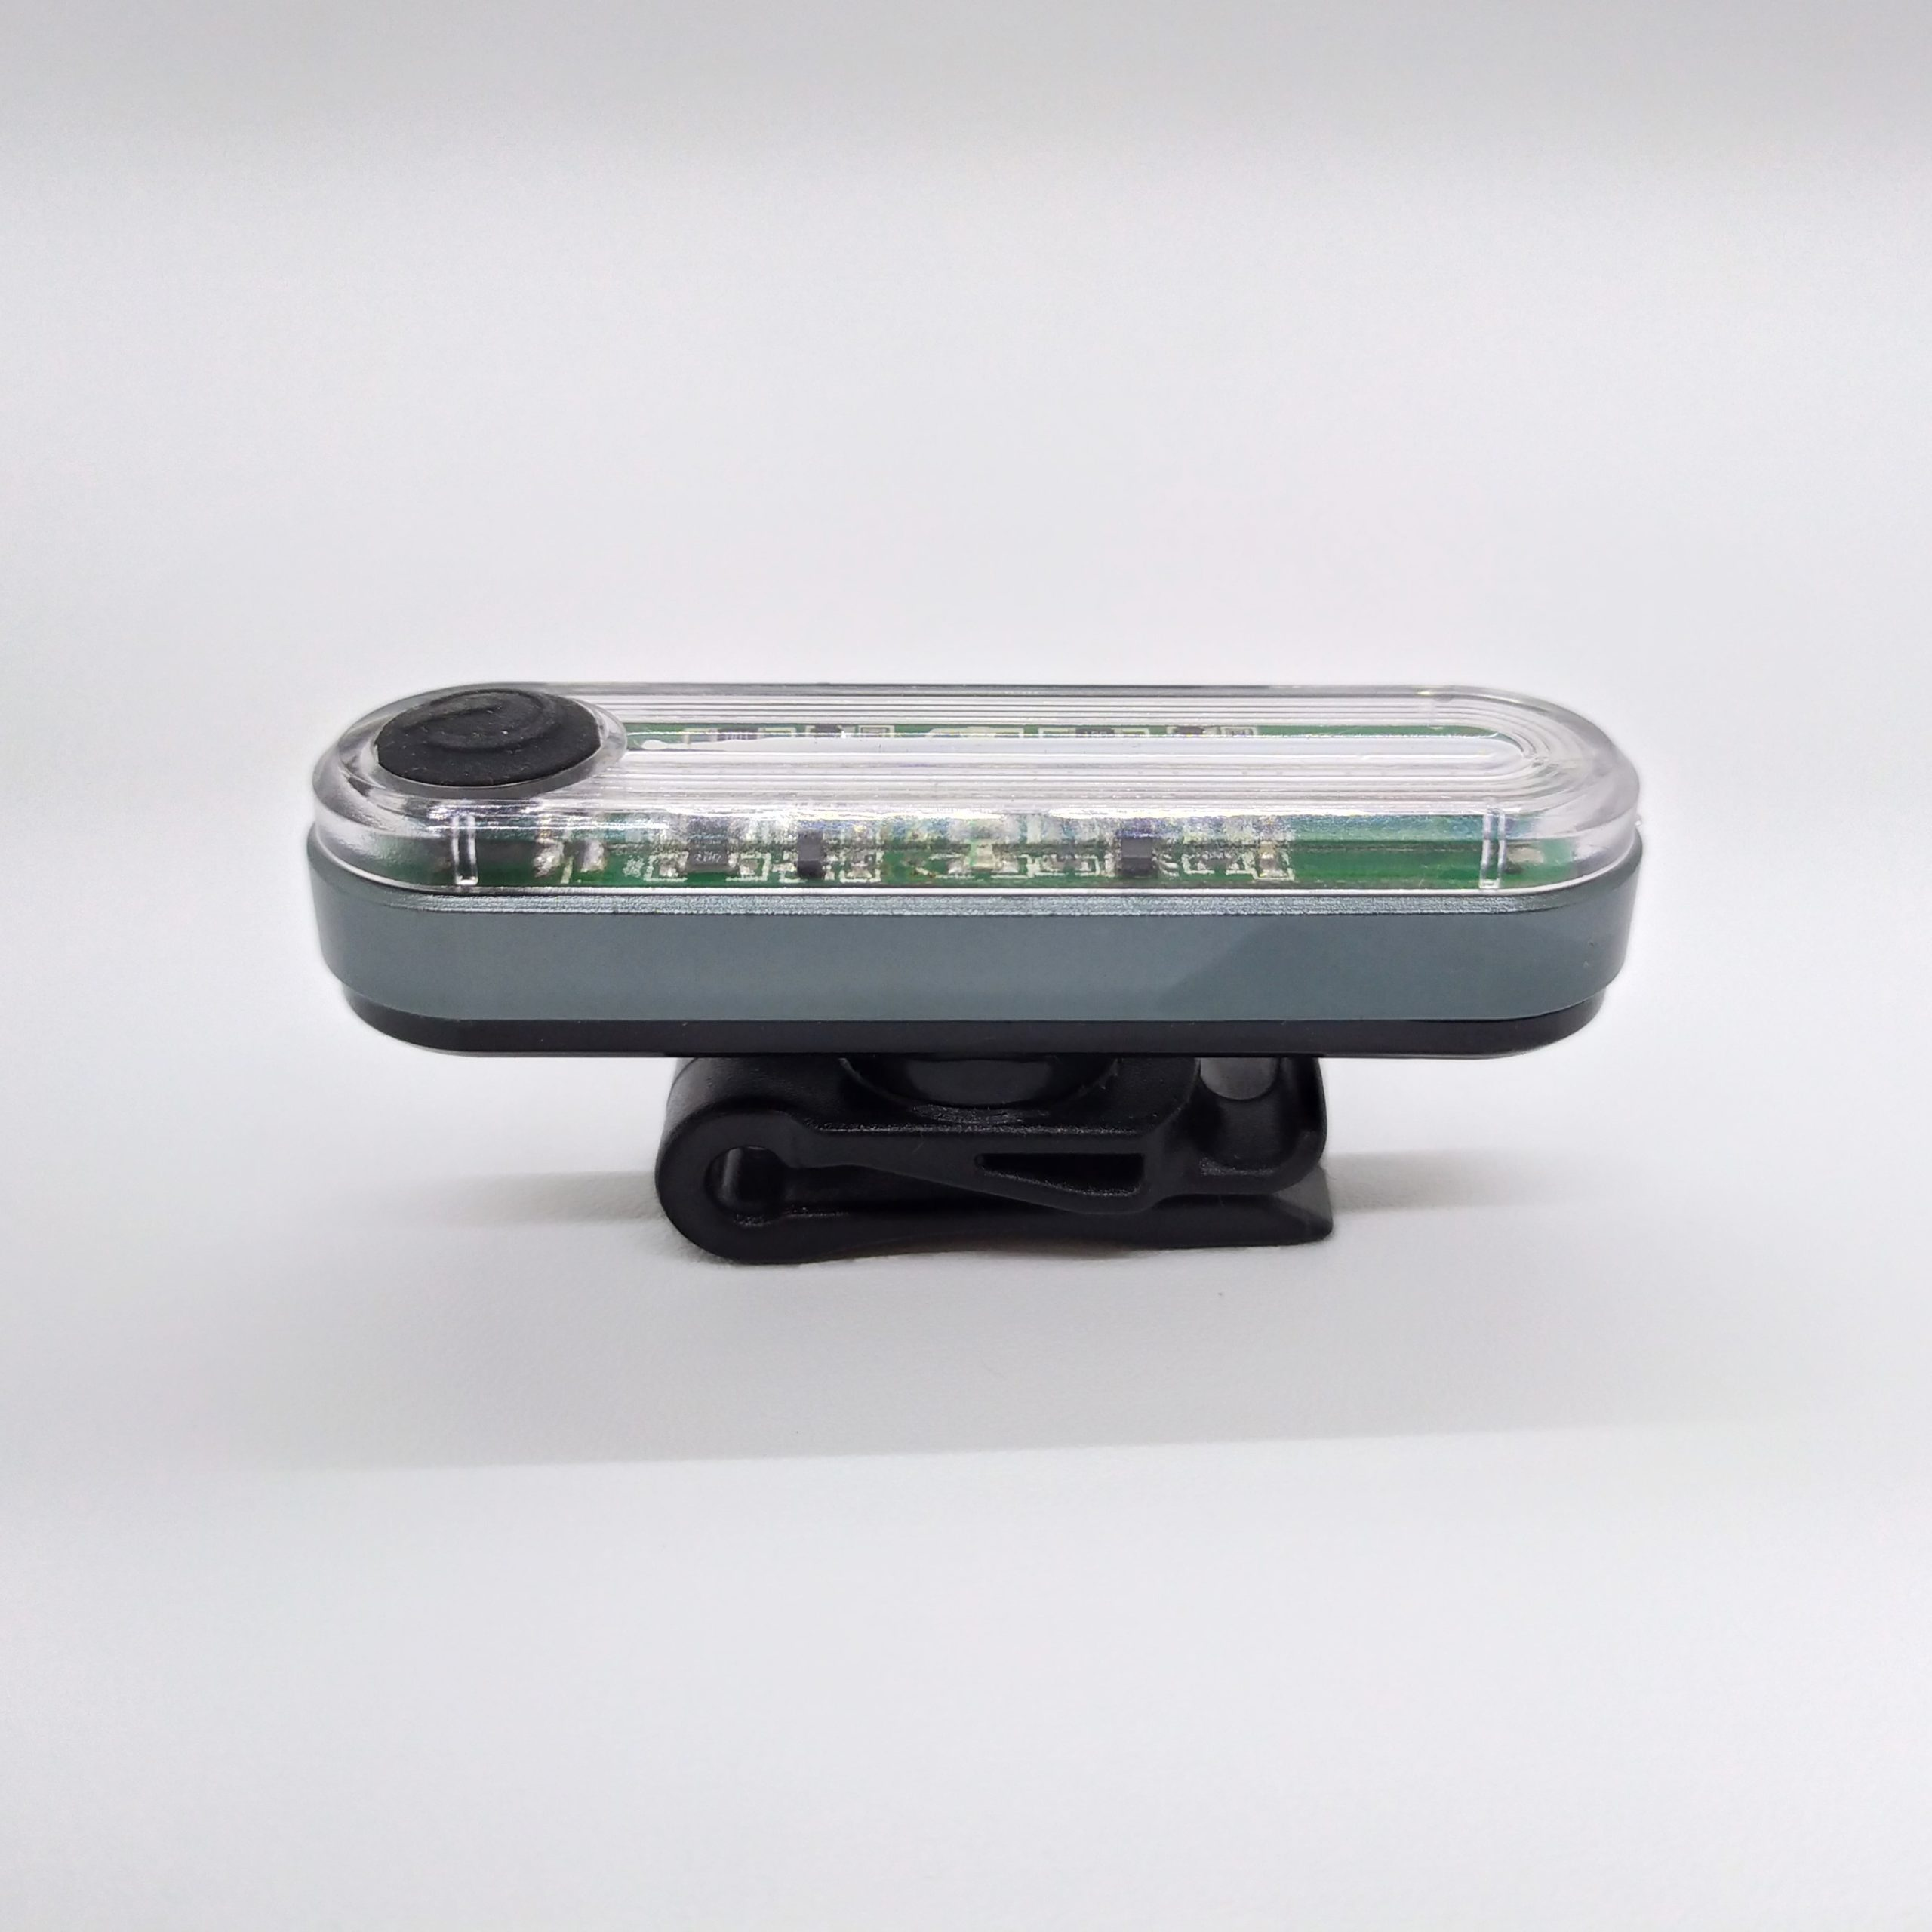 IMG 20200616 135316 scaled - Cob USB rechargeable tail light